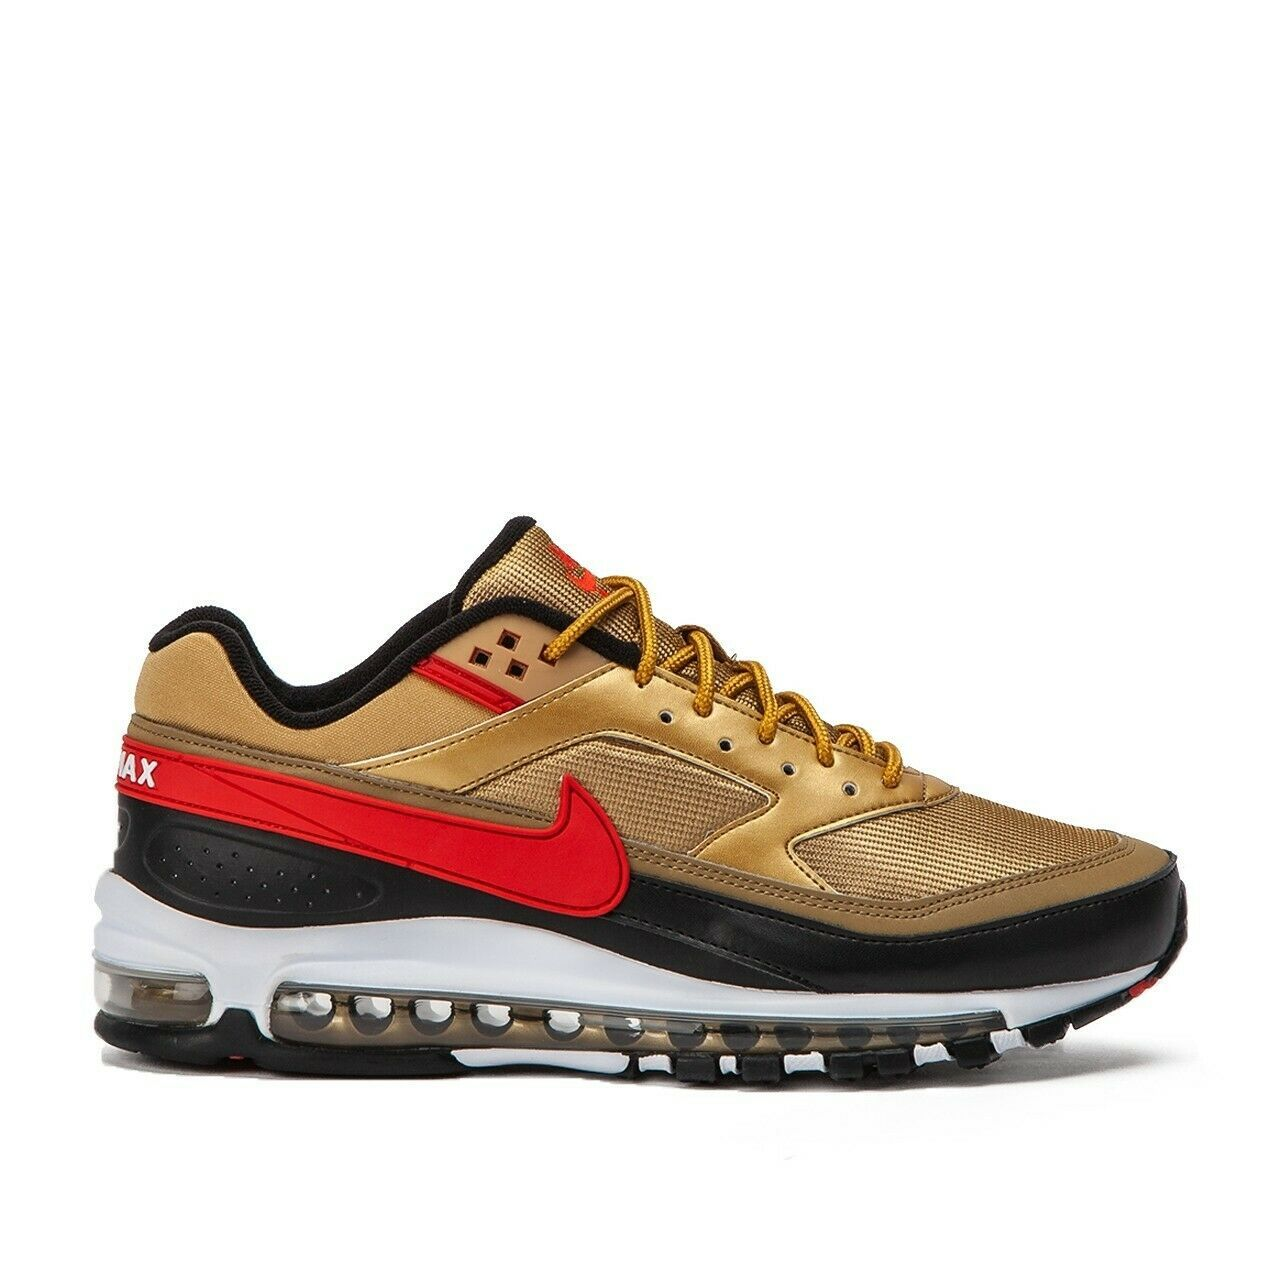 Nike Air Max 97 BW Metallic Gold Red Trainers image 8